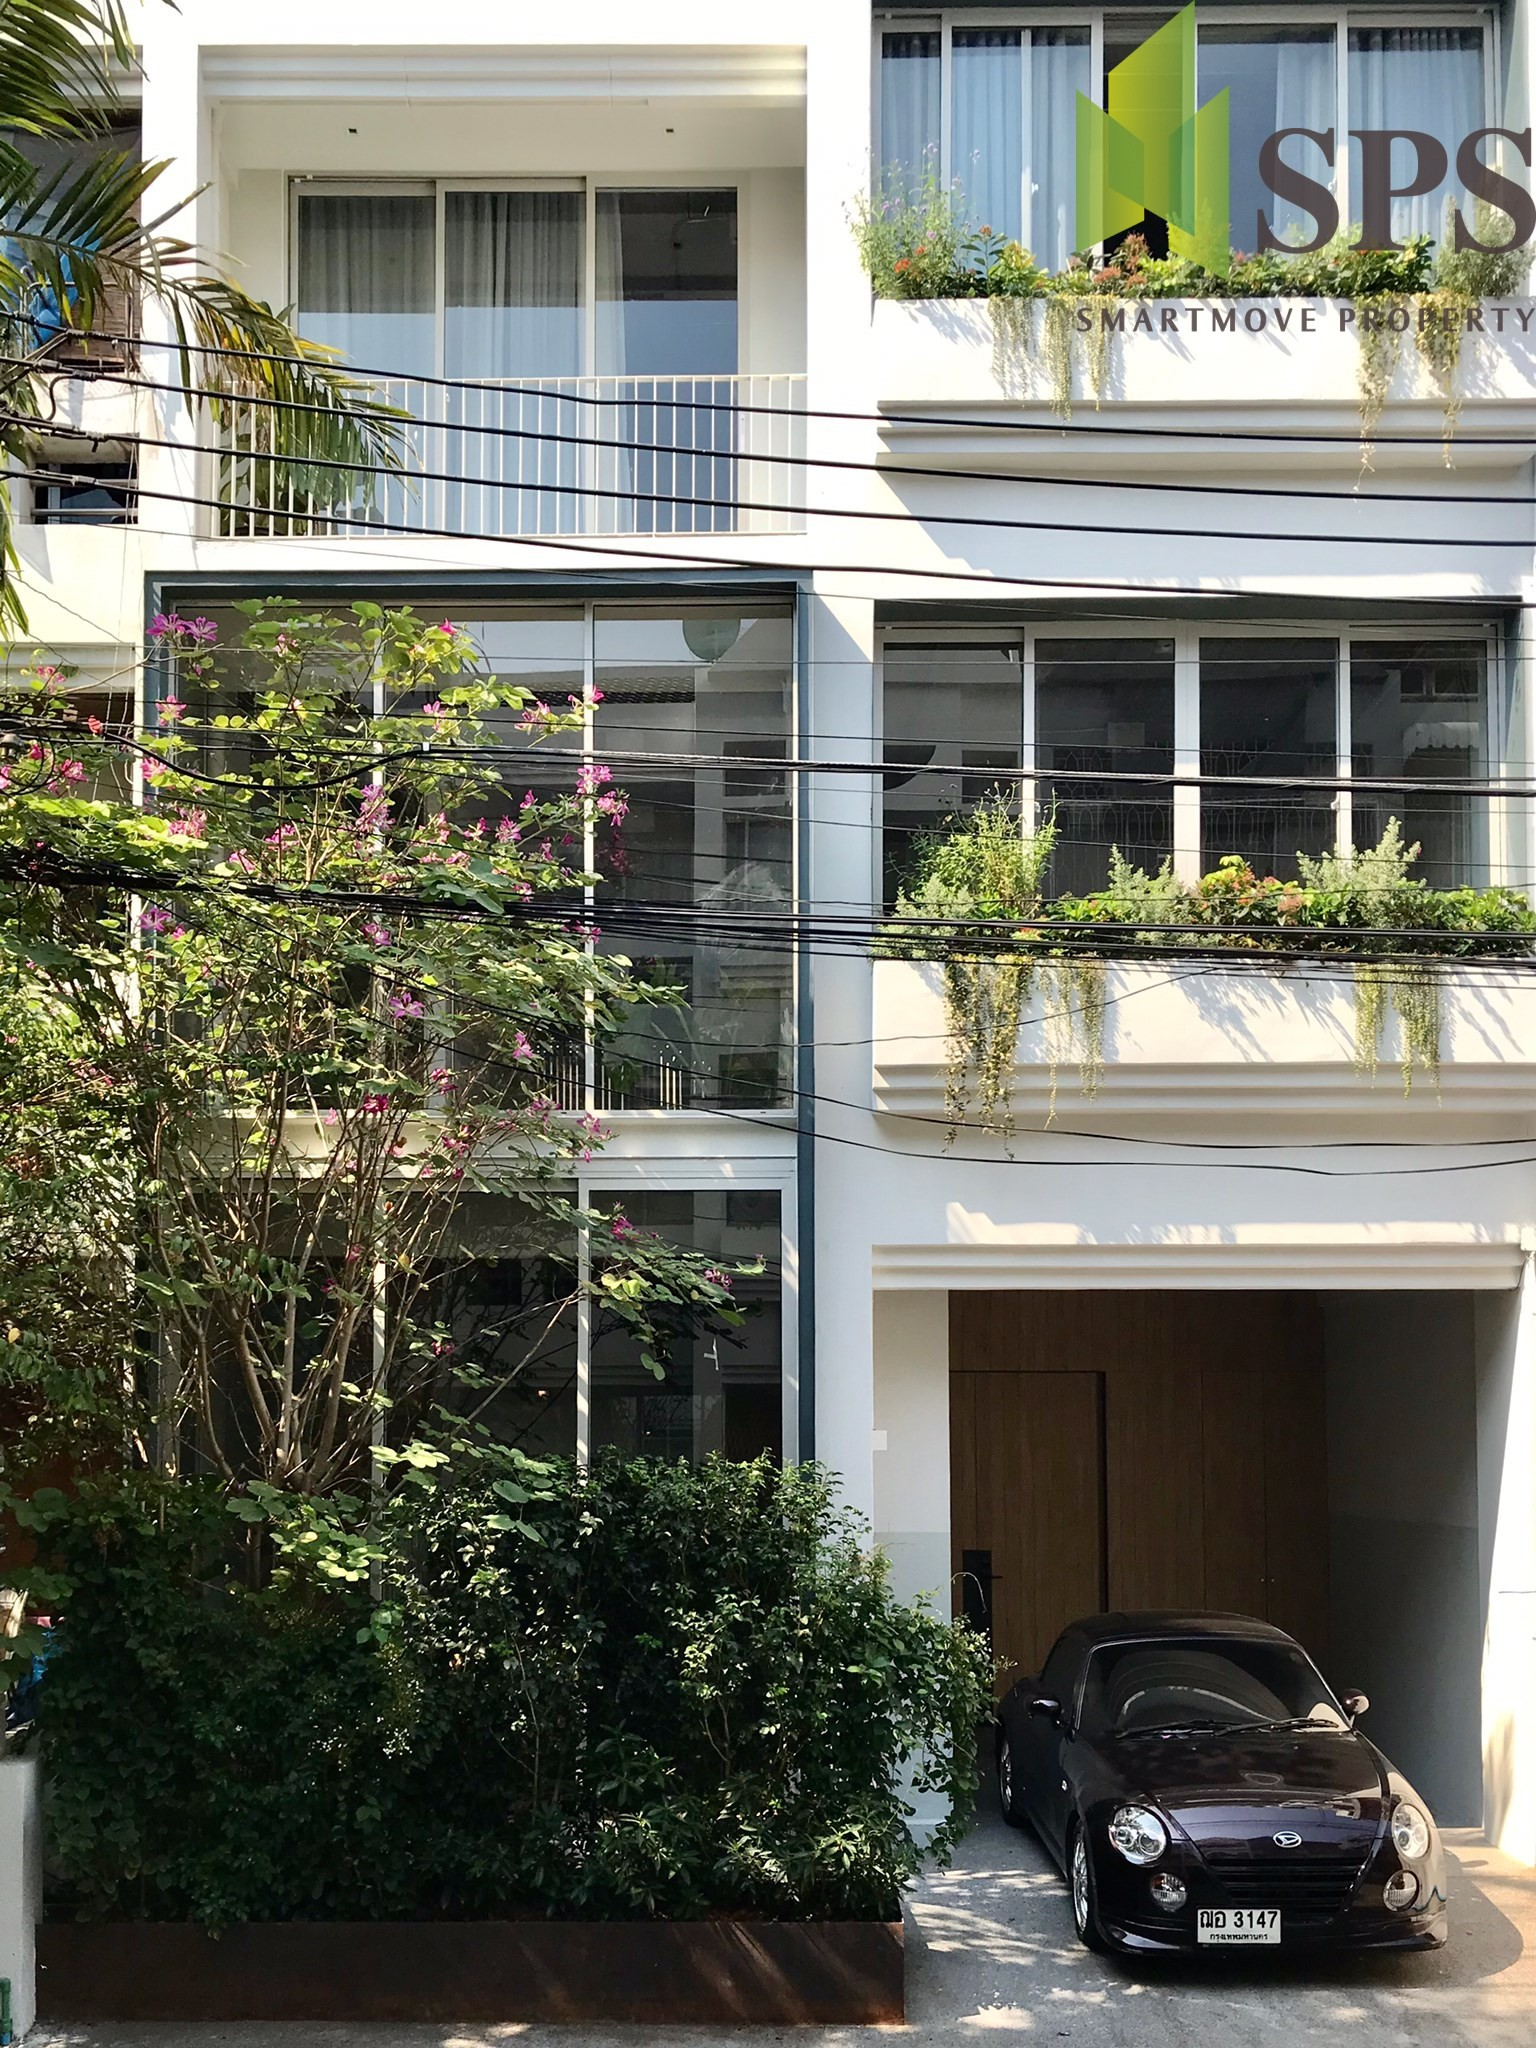 For Rent Townhouse 4 Storey in Sukhumvit 49/6 (Property ID:SPS-PP136)